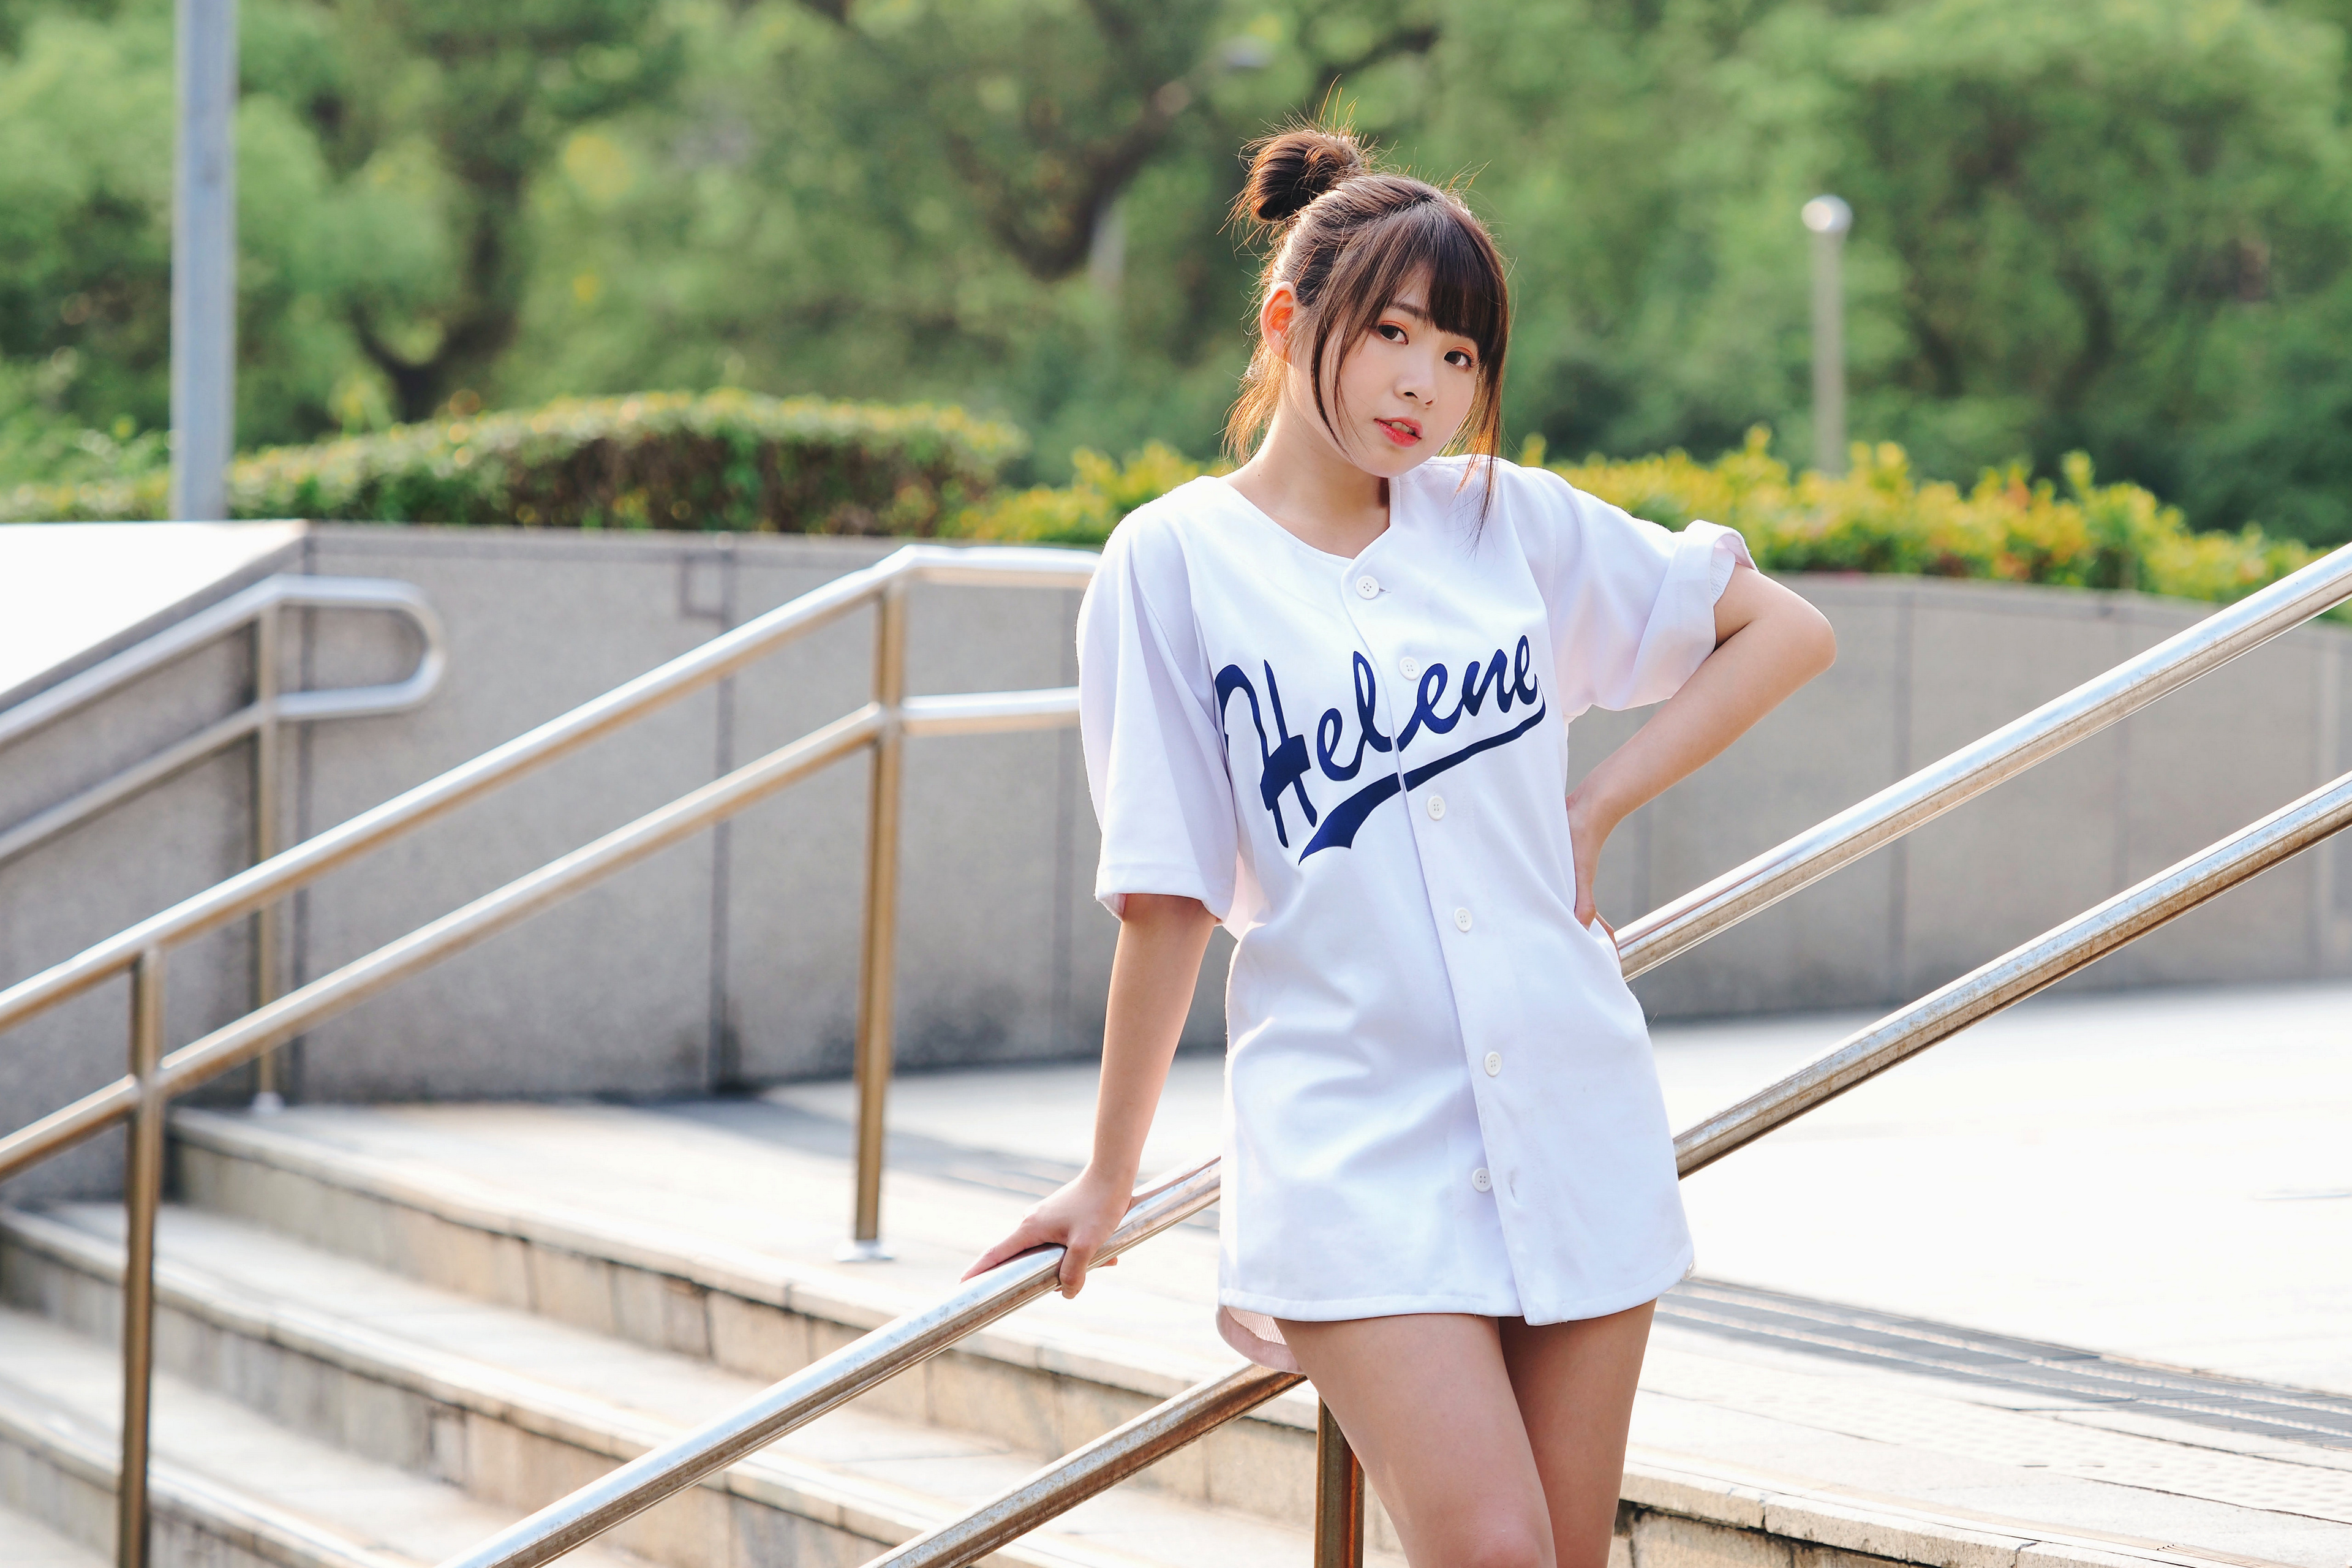 Pictures Pose Girls Asiatic Glance posing female young woman Asian Staring